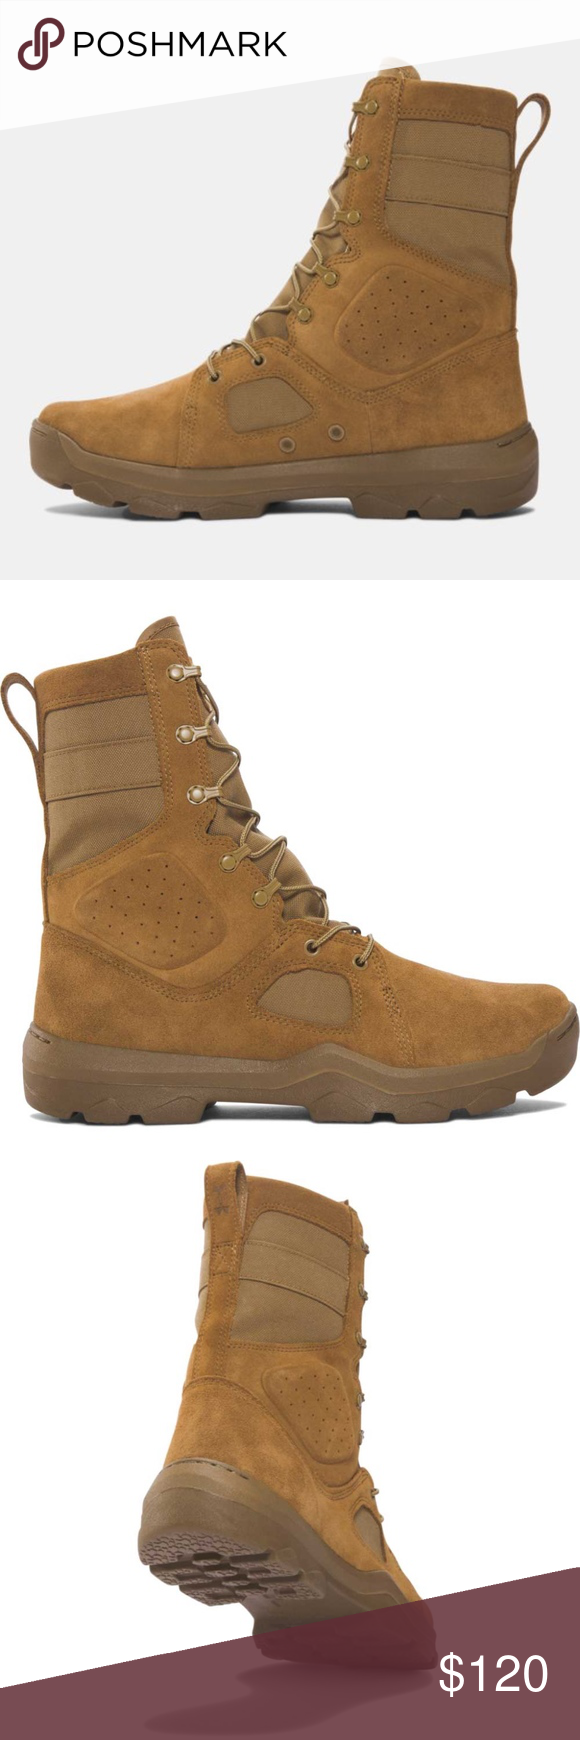 New Under Armour Men S Fnp Coyote Military Boots Nwt Military Boots Boots Under Armour Shoes